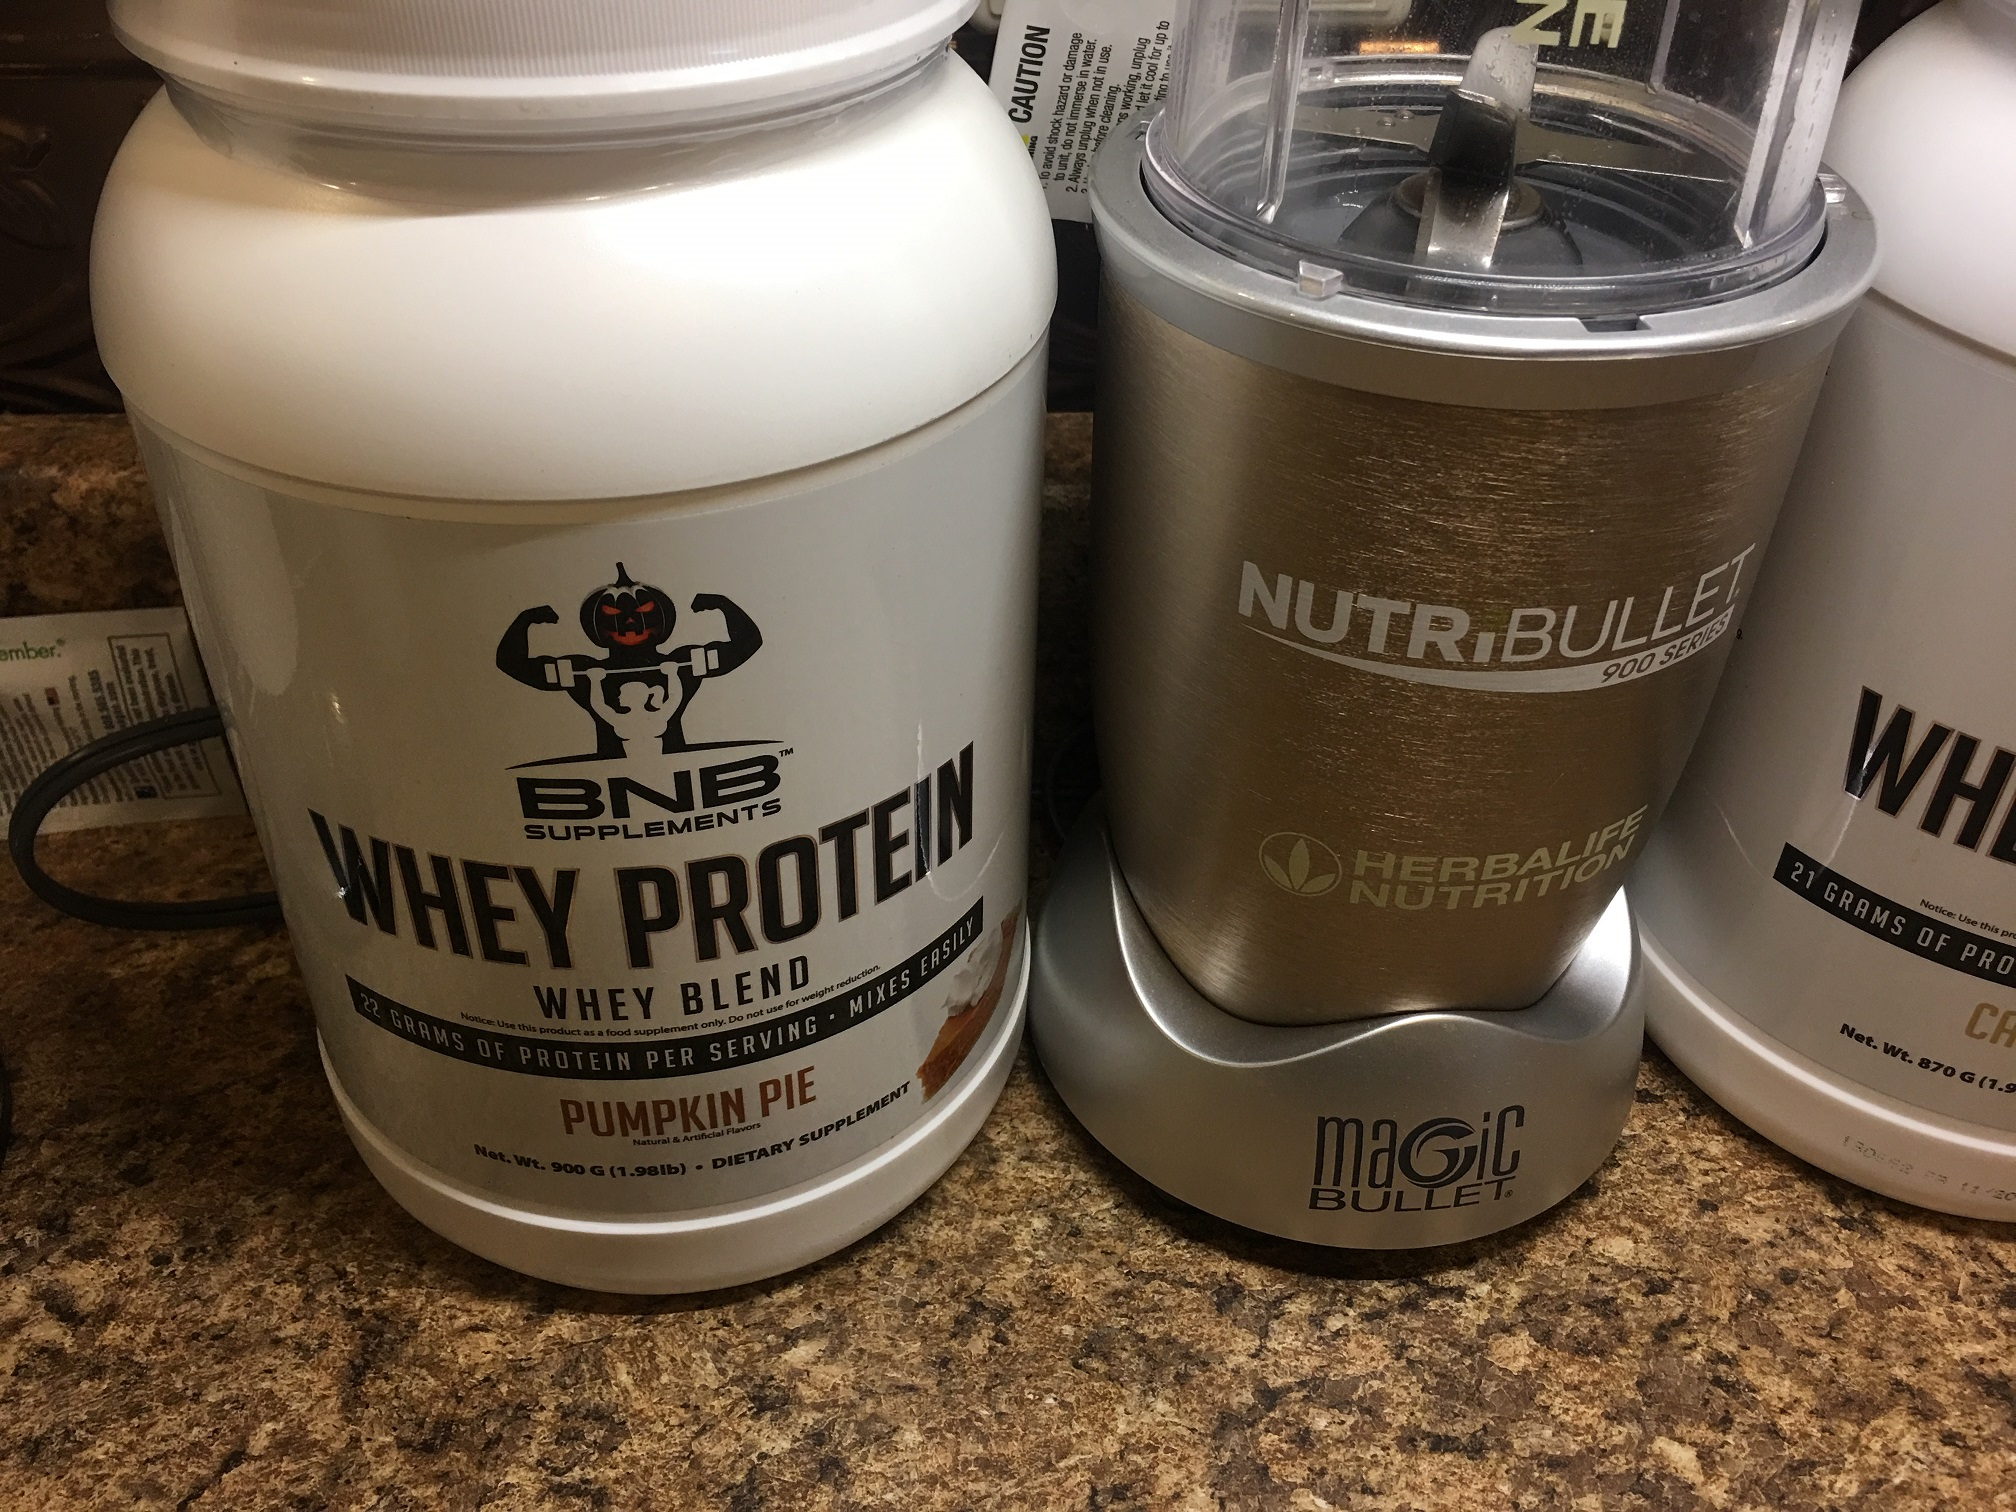 Excellent and nutritious source of protein